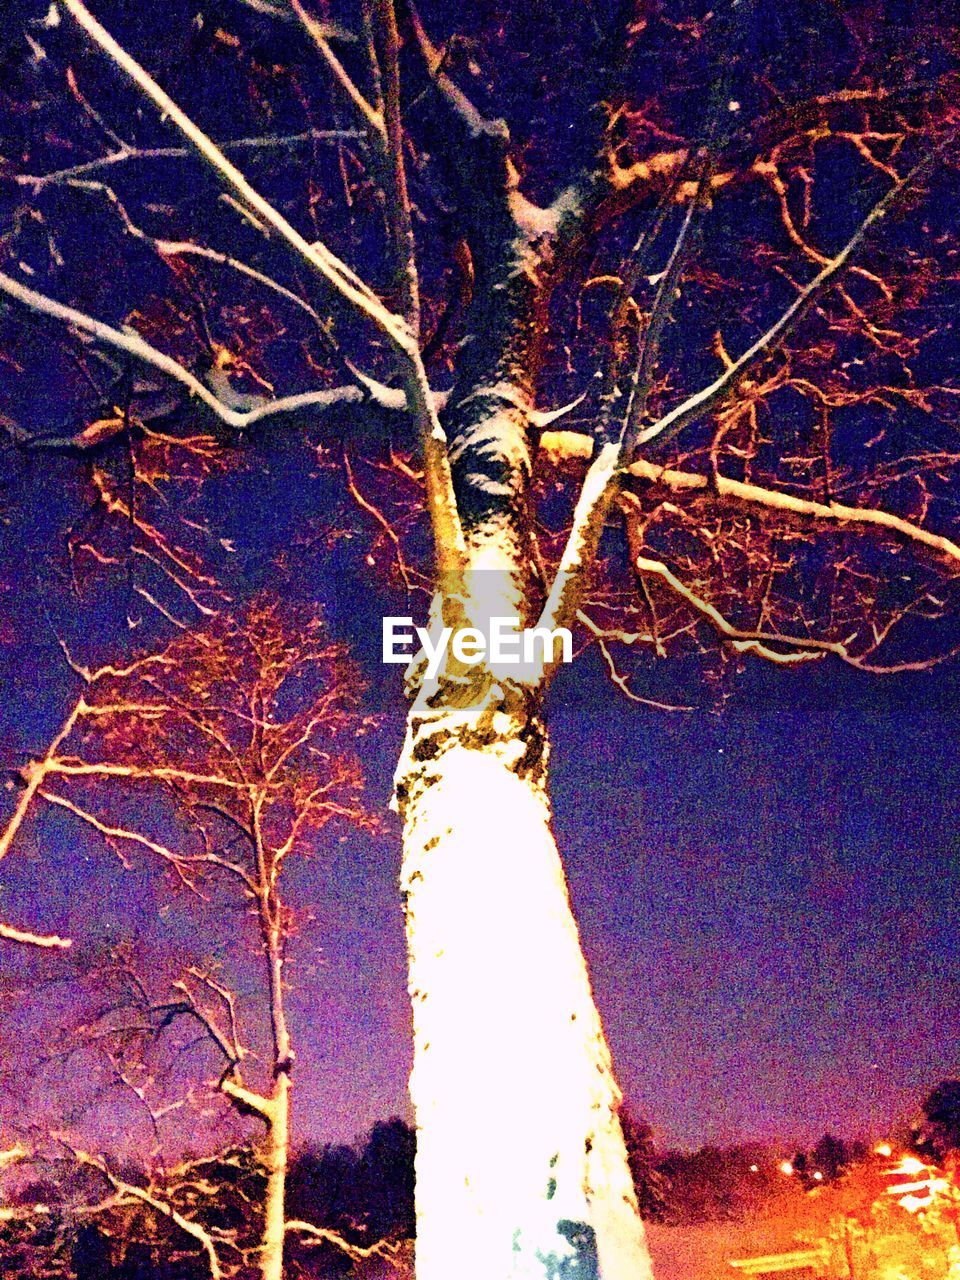 night, nature, outdoors, no people, tree, beauty in nature, illuminated, winter, branch, tranquility, growth, cold temperature, close-up, sky, freshness